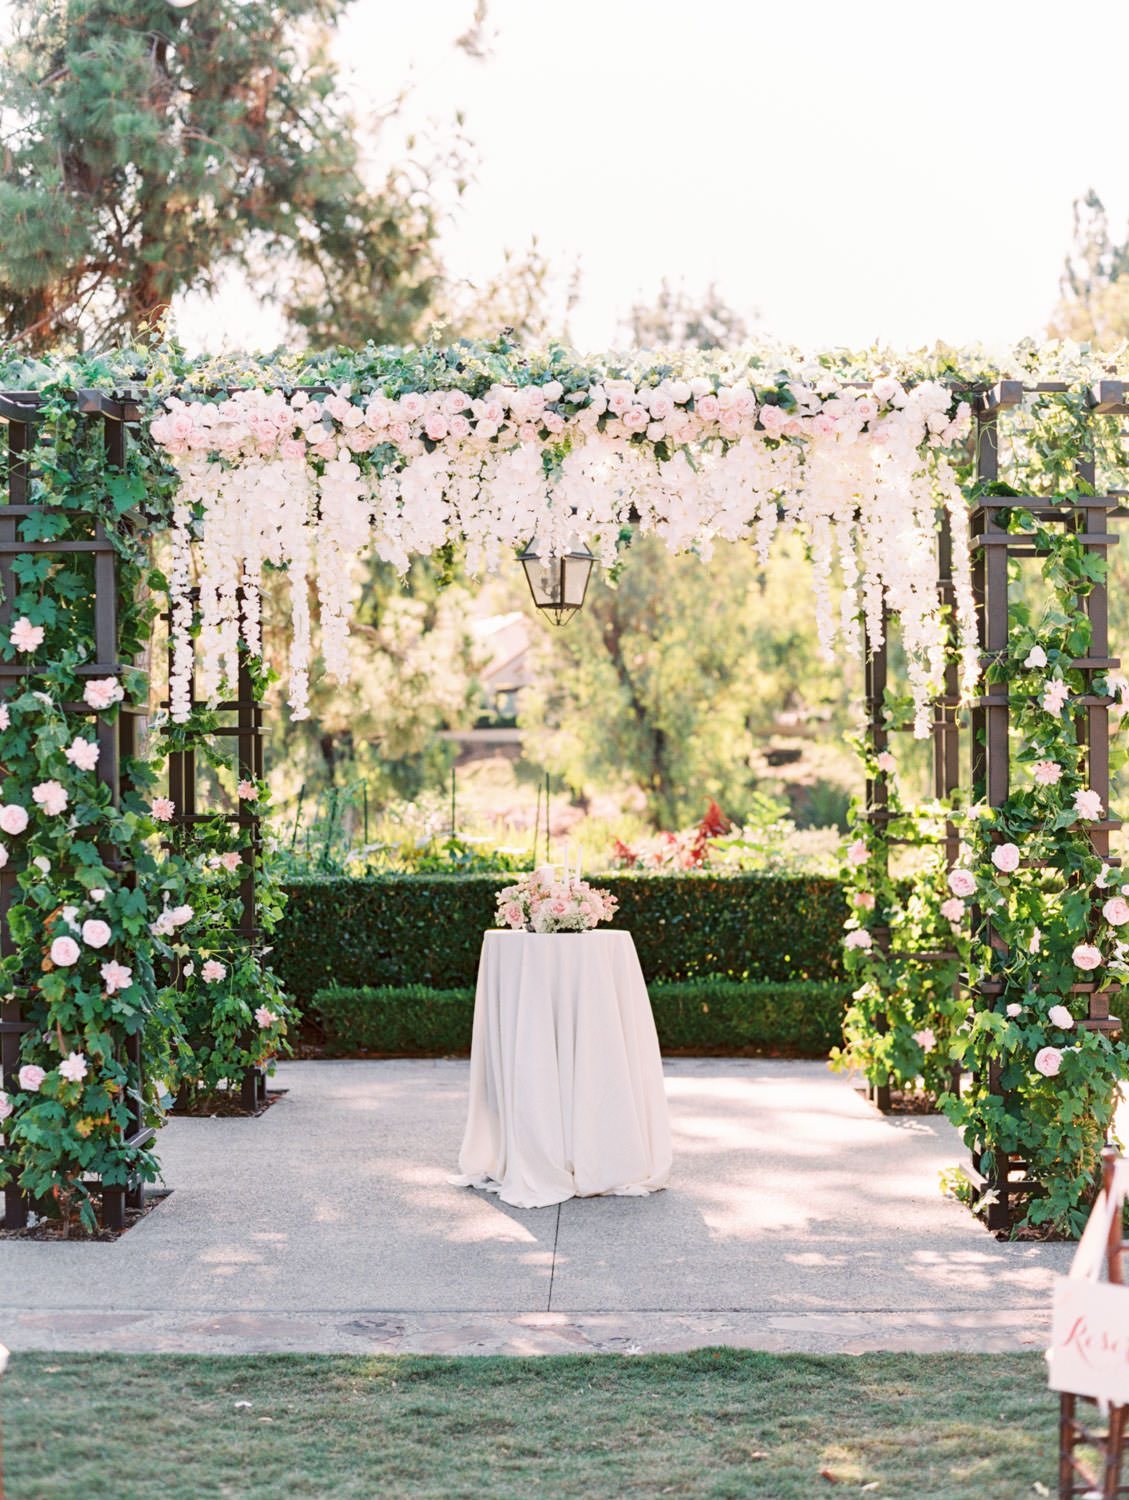 Pergola wrapped in greenery with blush flowers on the side columns and hanging blush and ivory flowers in the center. Rancho Bernardo Inn Aragon lawn wedding ceremony. Film photo by Cavin Elizabeth Photography